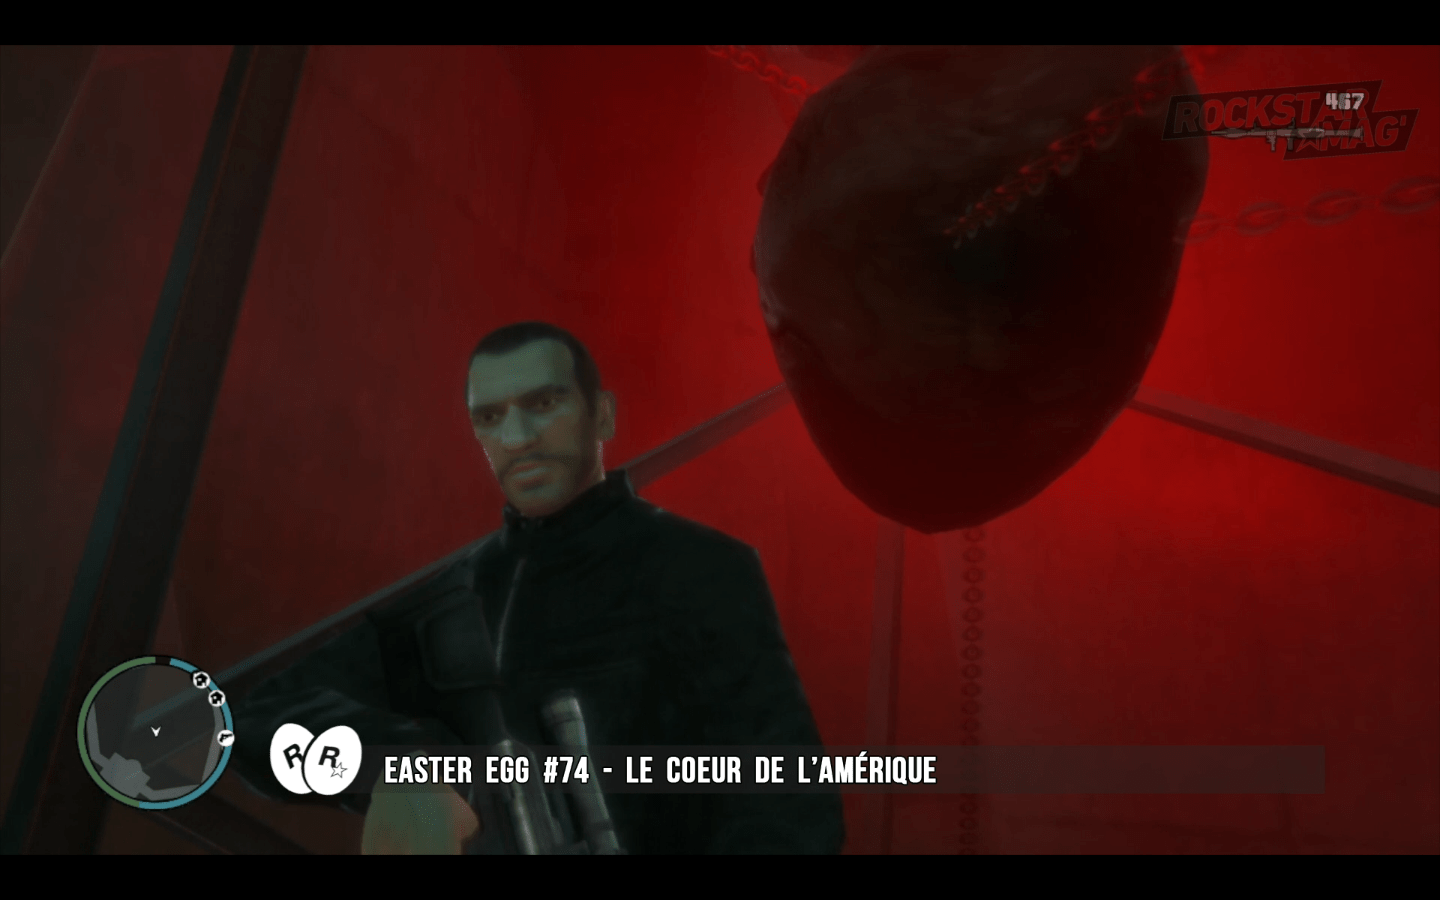 GTA IV - Easter Egg 74